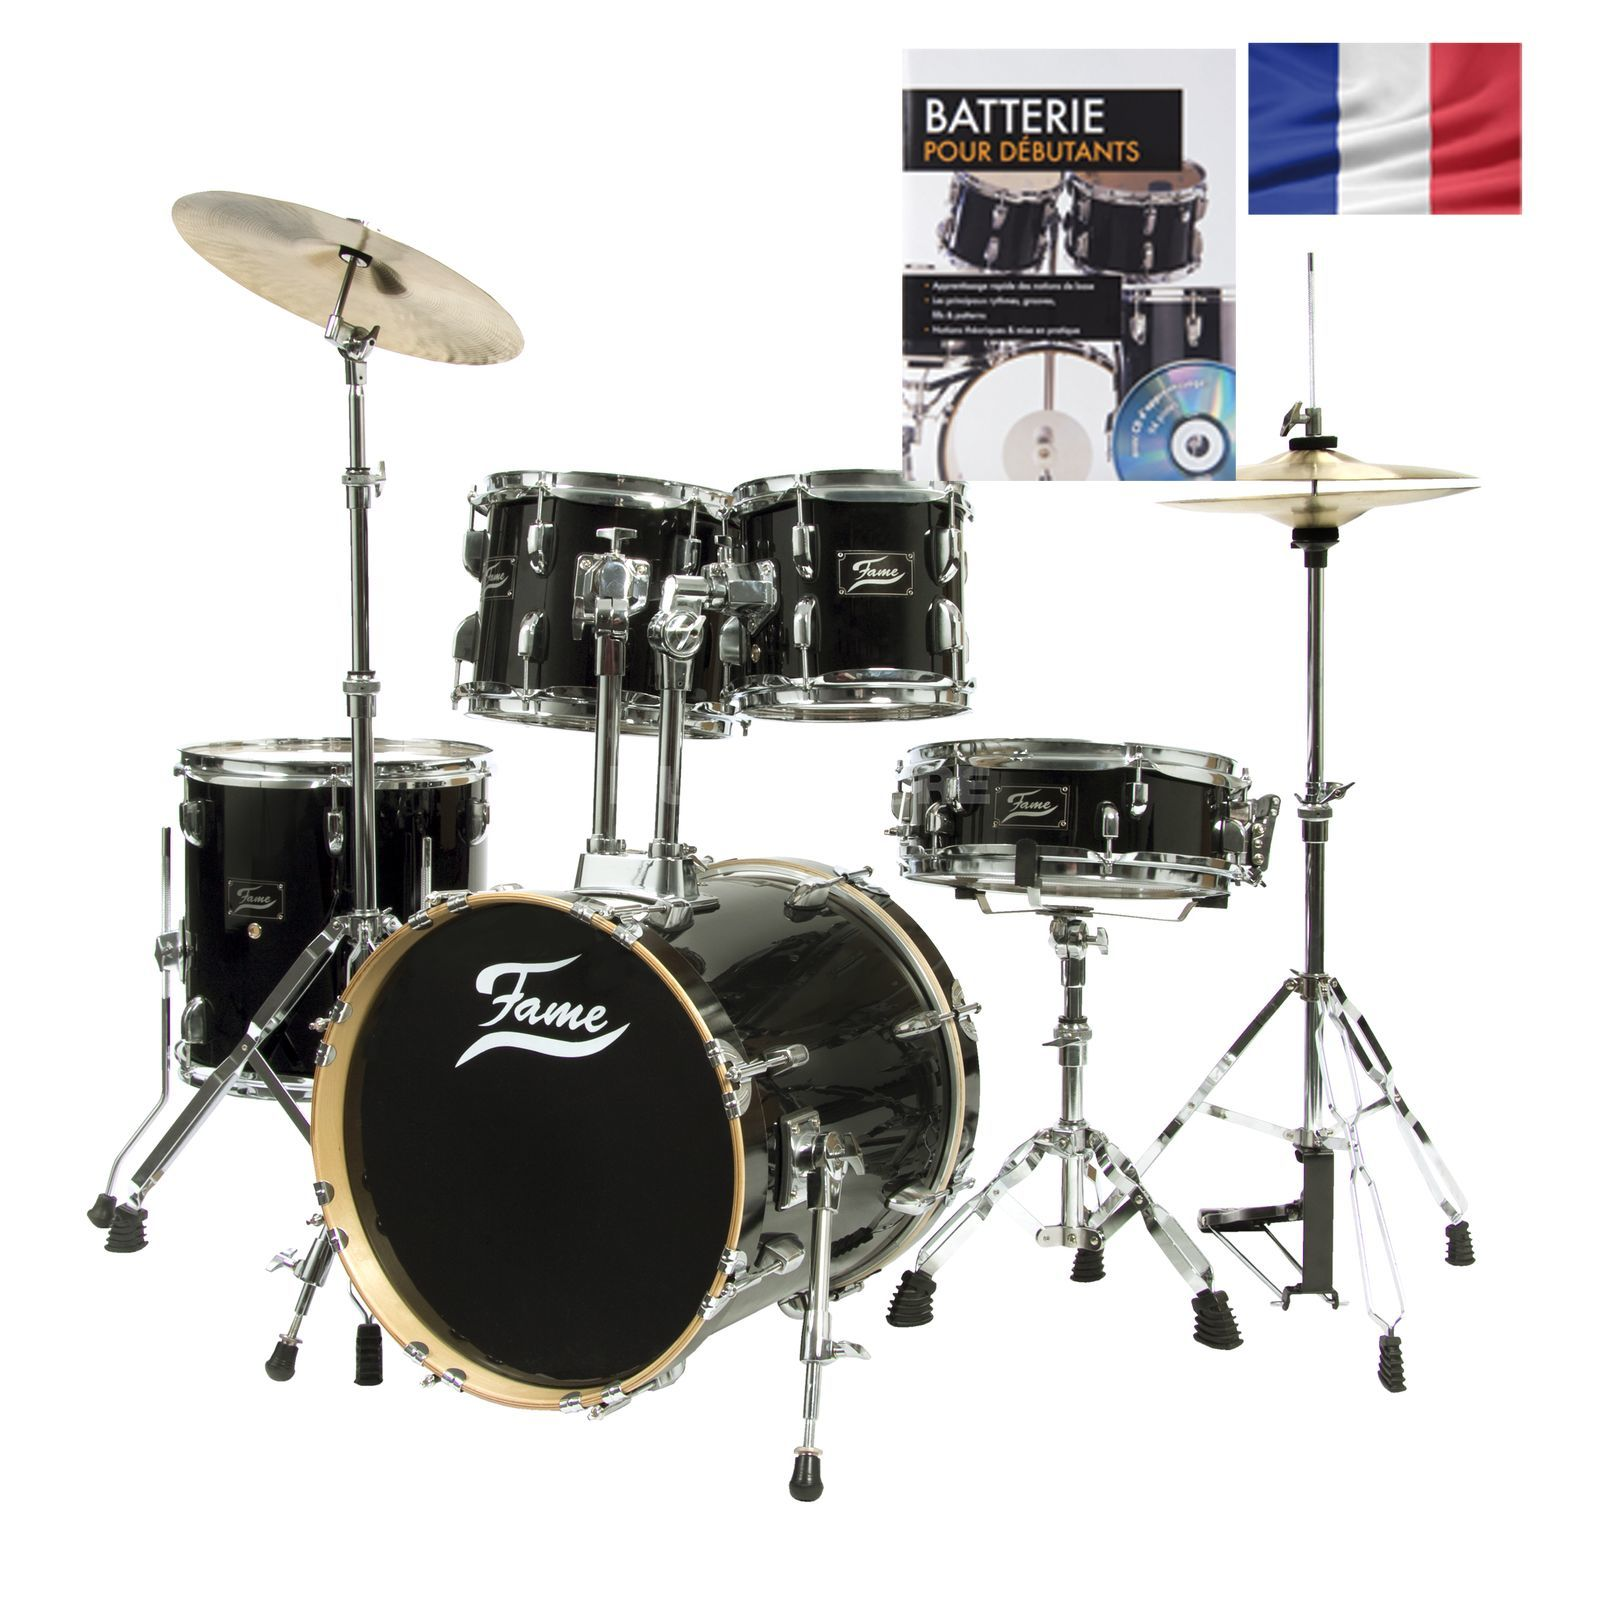 SET Batterie acoustique FAME Jungle, noir + partitions Produktbild